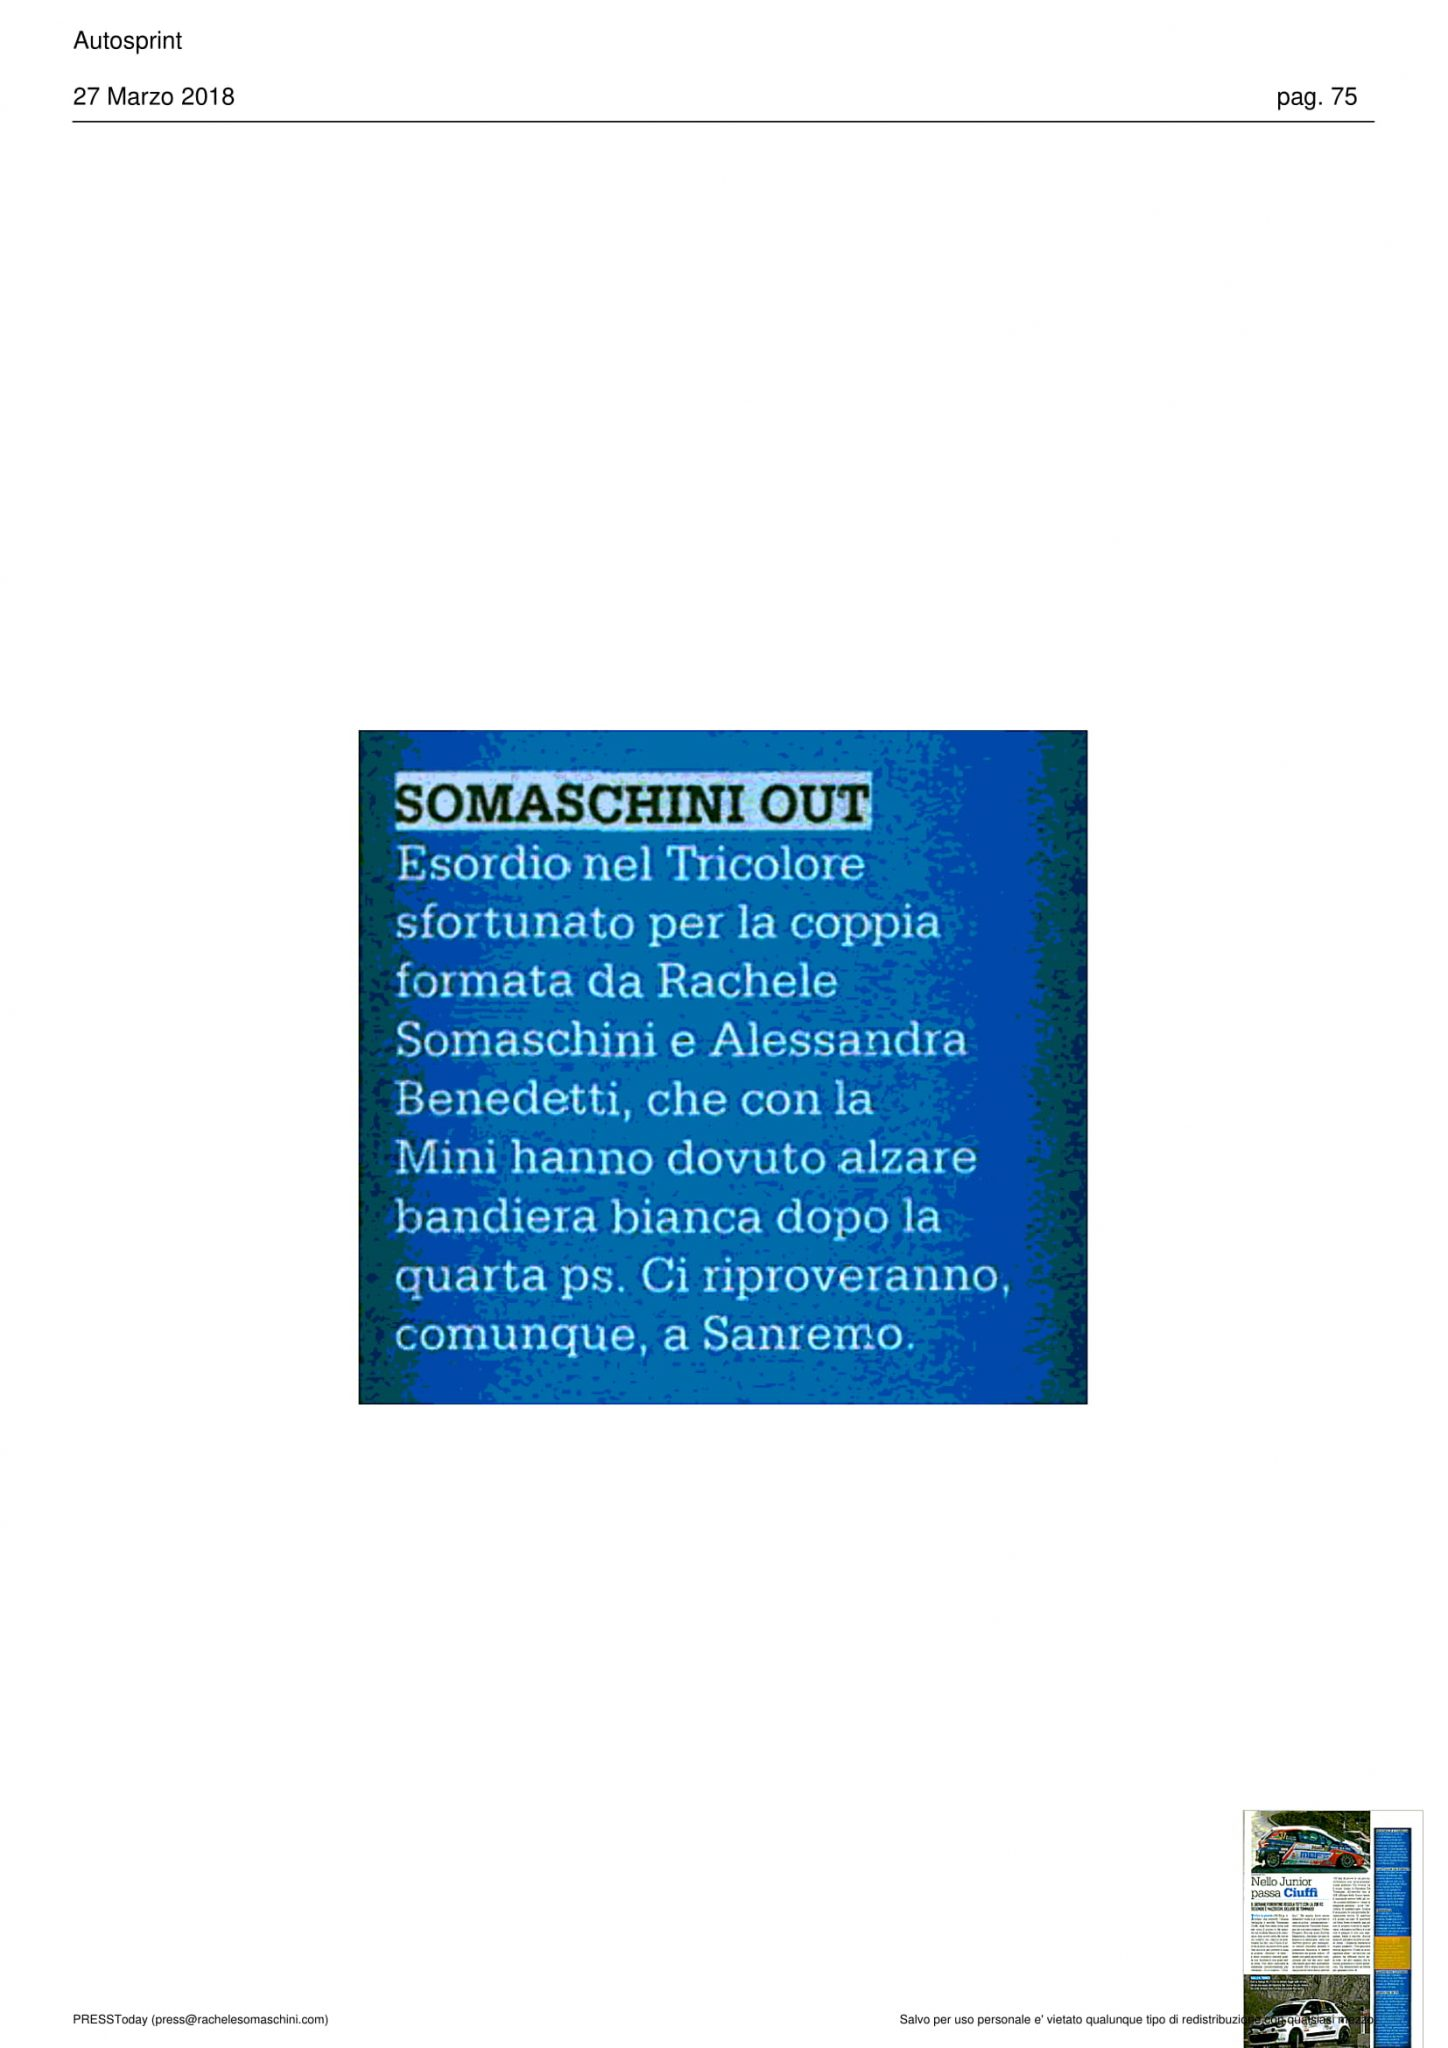 Autosprint • Somaschini out